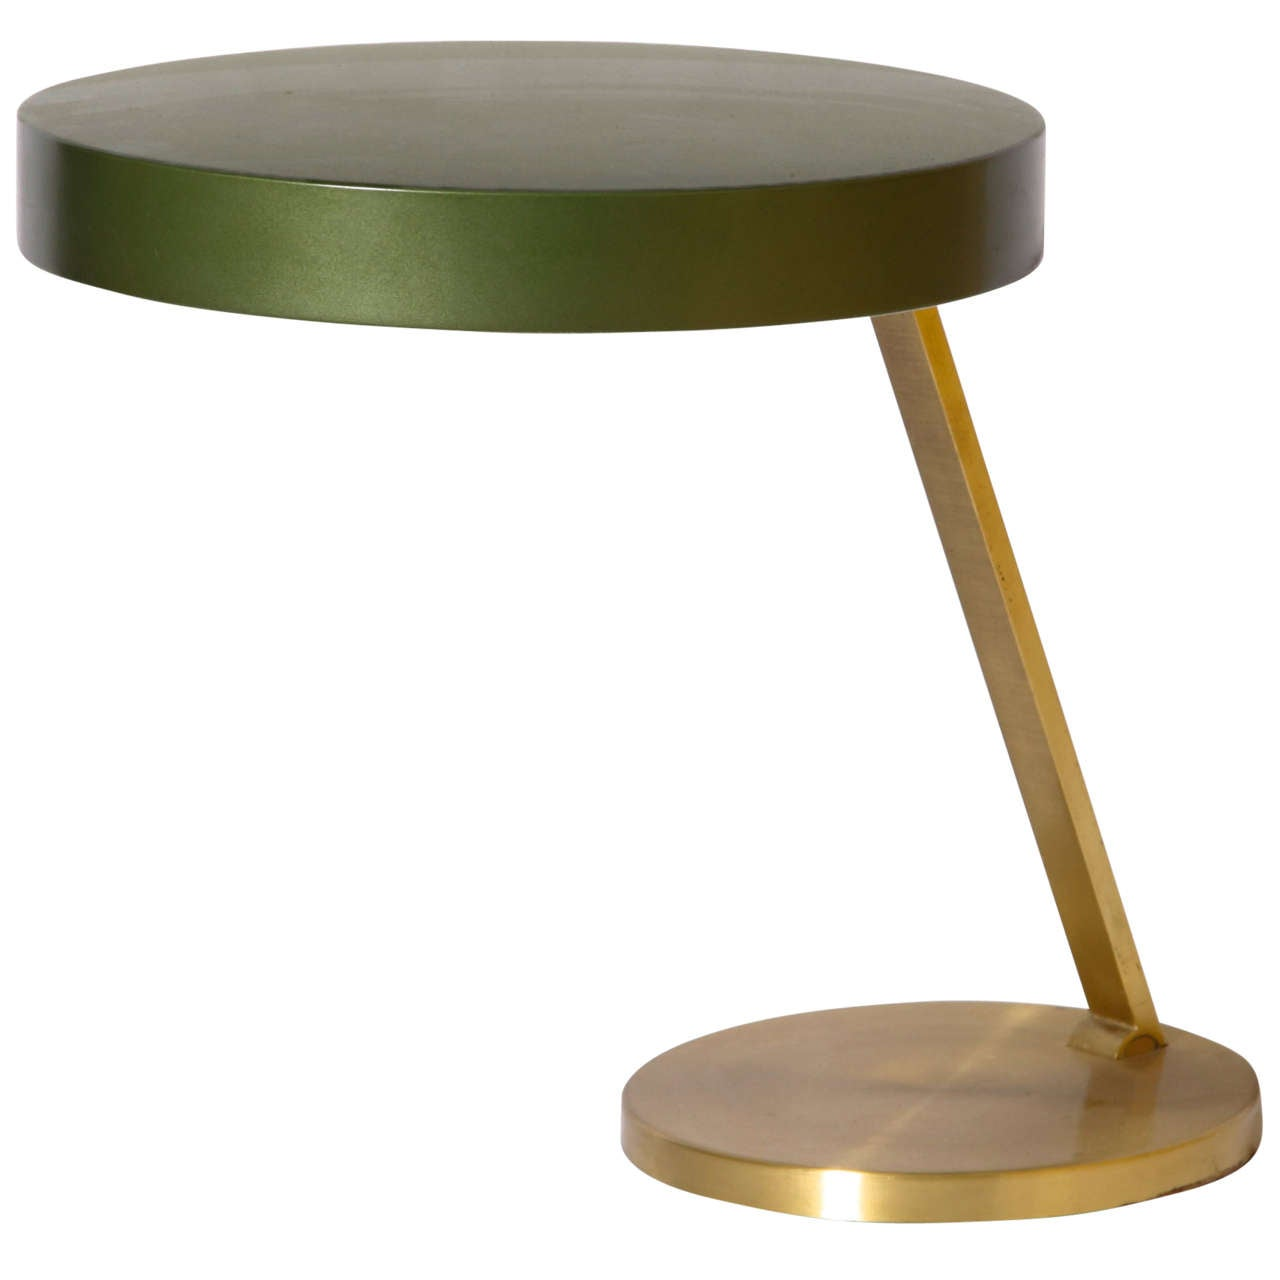 Christian Dell Kaiser Idell Office Or Desk Lamp At 1stdibs